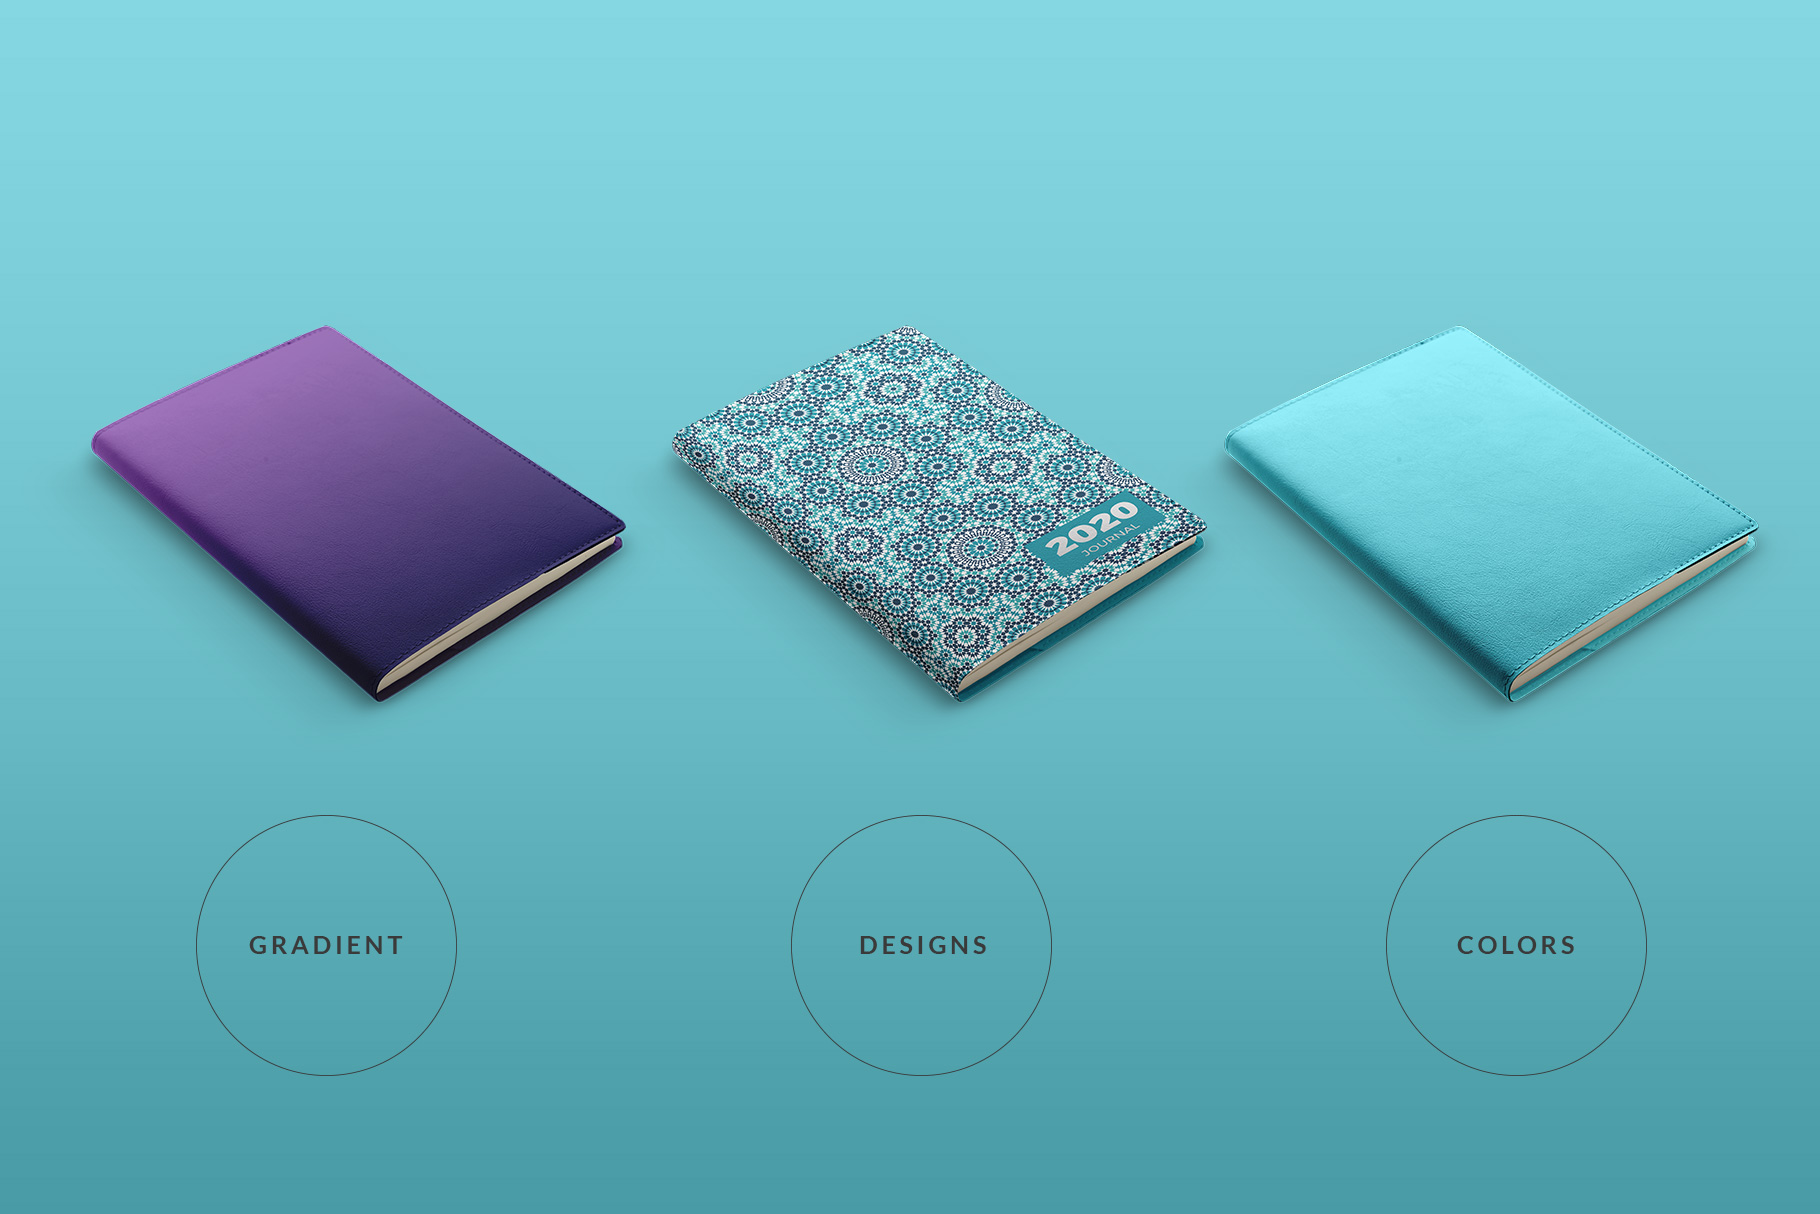 types of the leather bind journal cover mockup